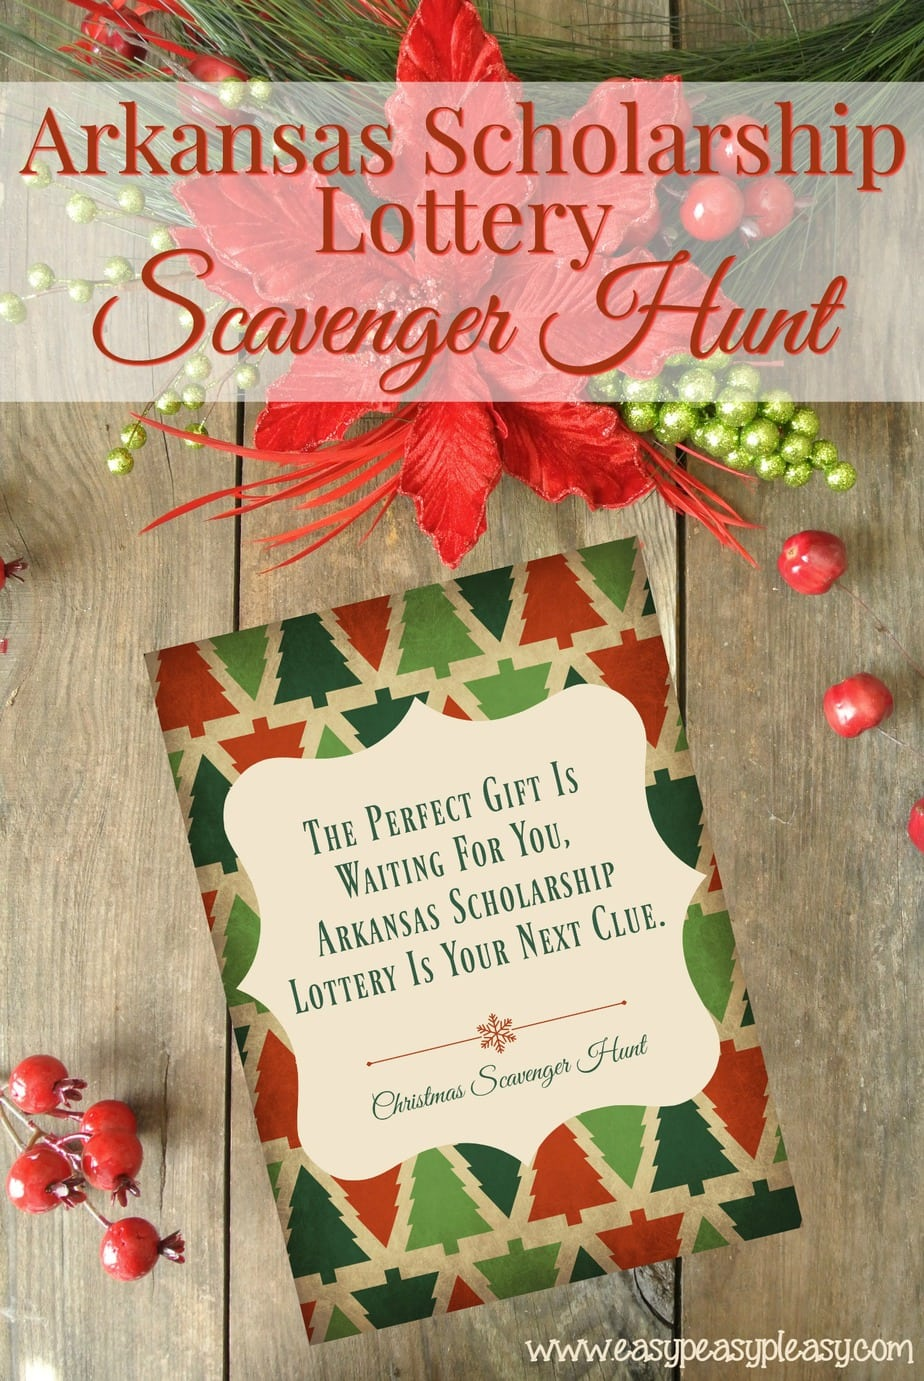 Free Printable Scavenger Hunt Clues for the Arkansas Scholarship Lottery Scratch Off Tickets.